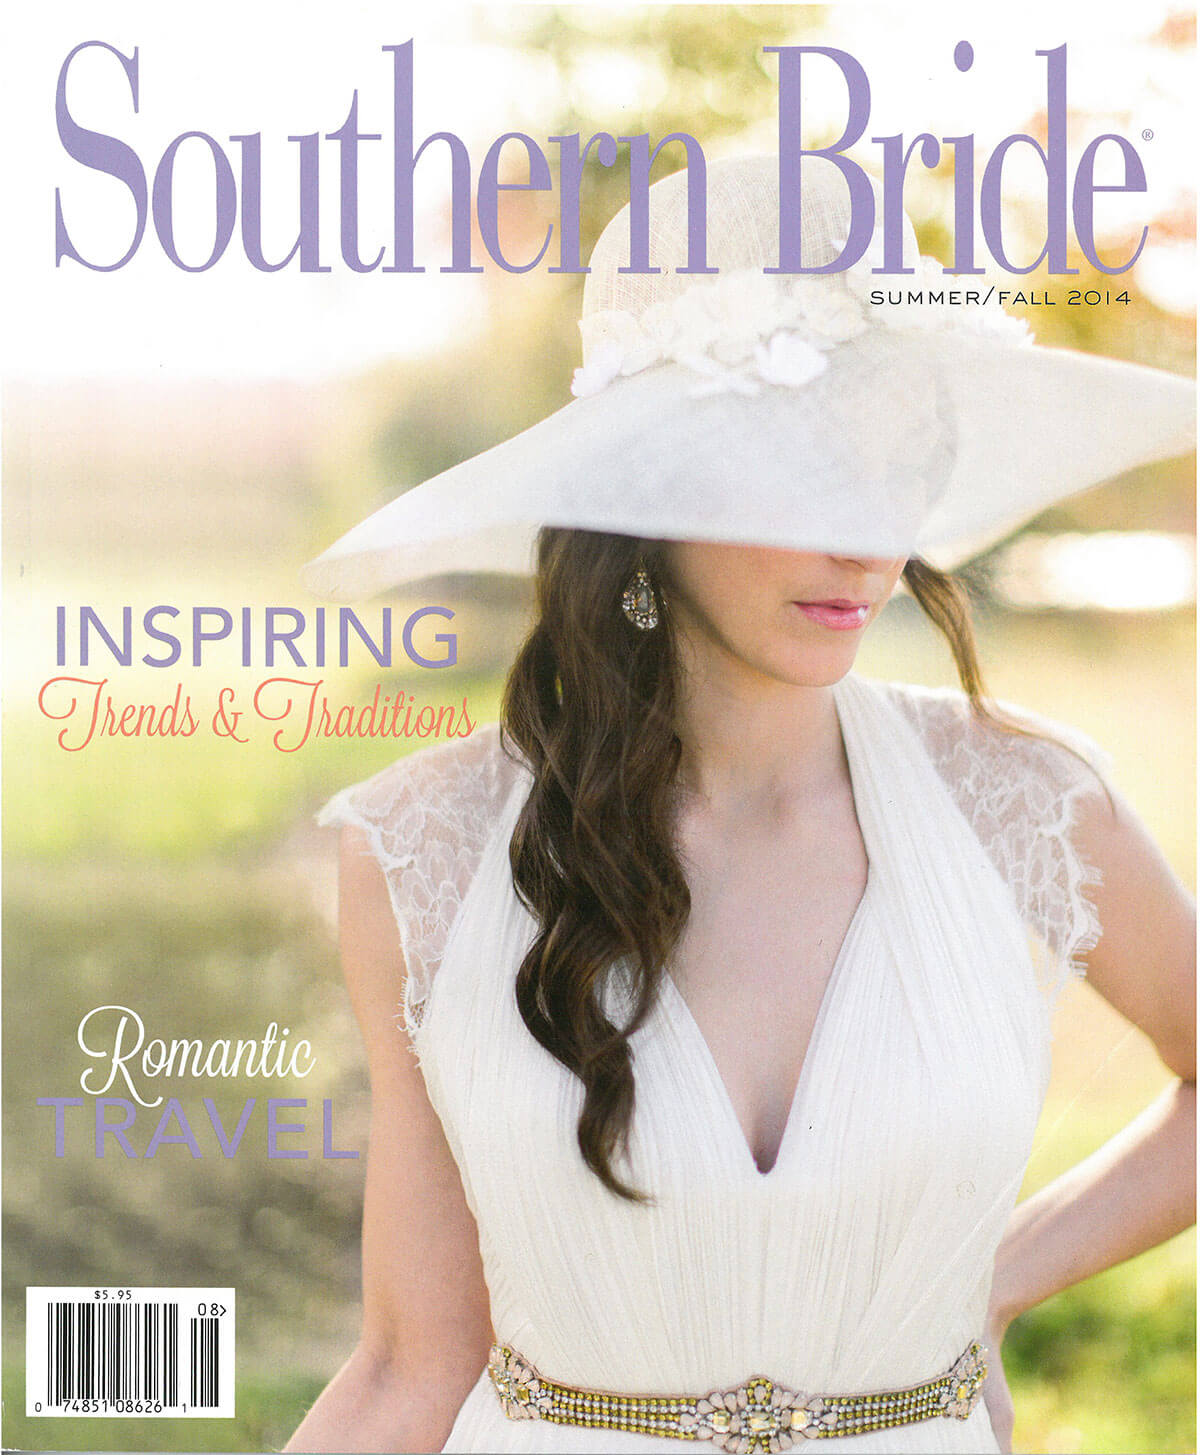 Southern Bride Magazine - Featuring Isn't She Lovely